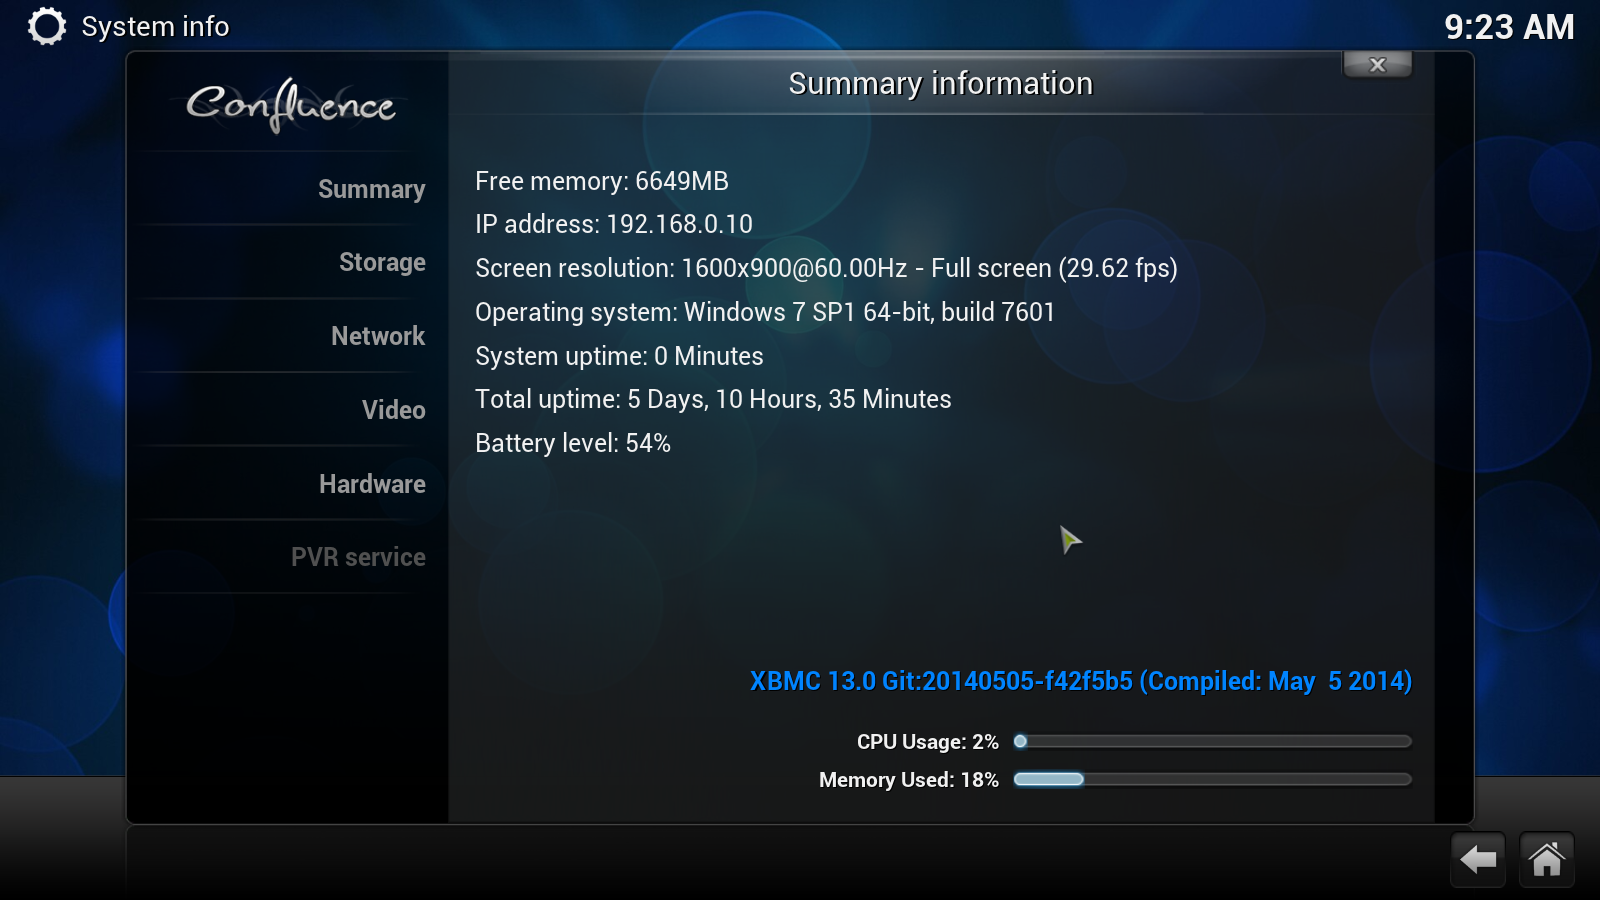 xbmc download for windows 7 ultimate